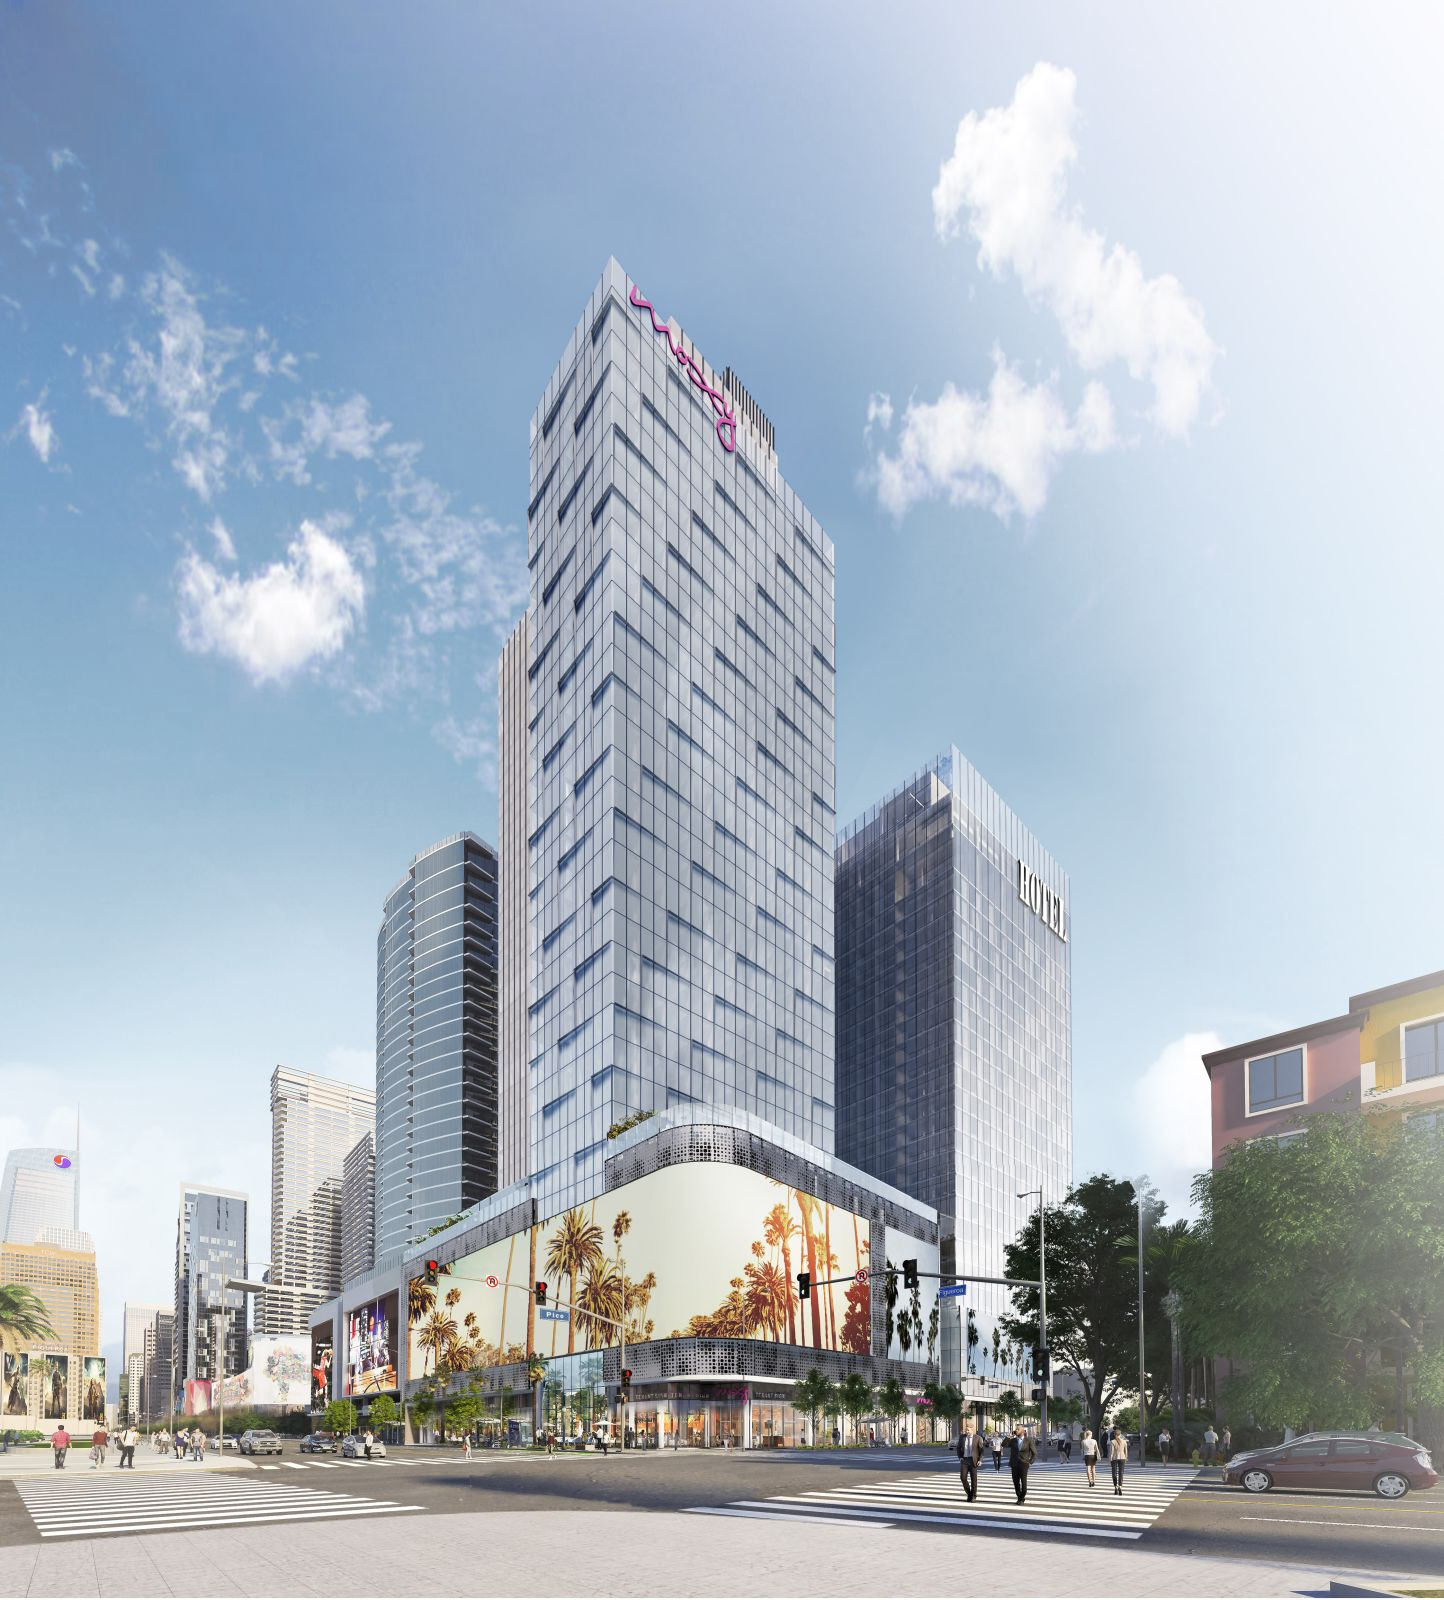 Marriott Moxy and AC Hotels